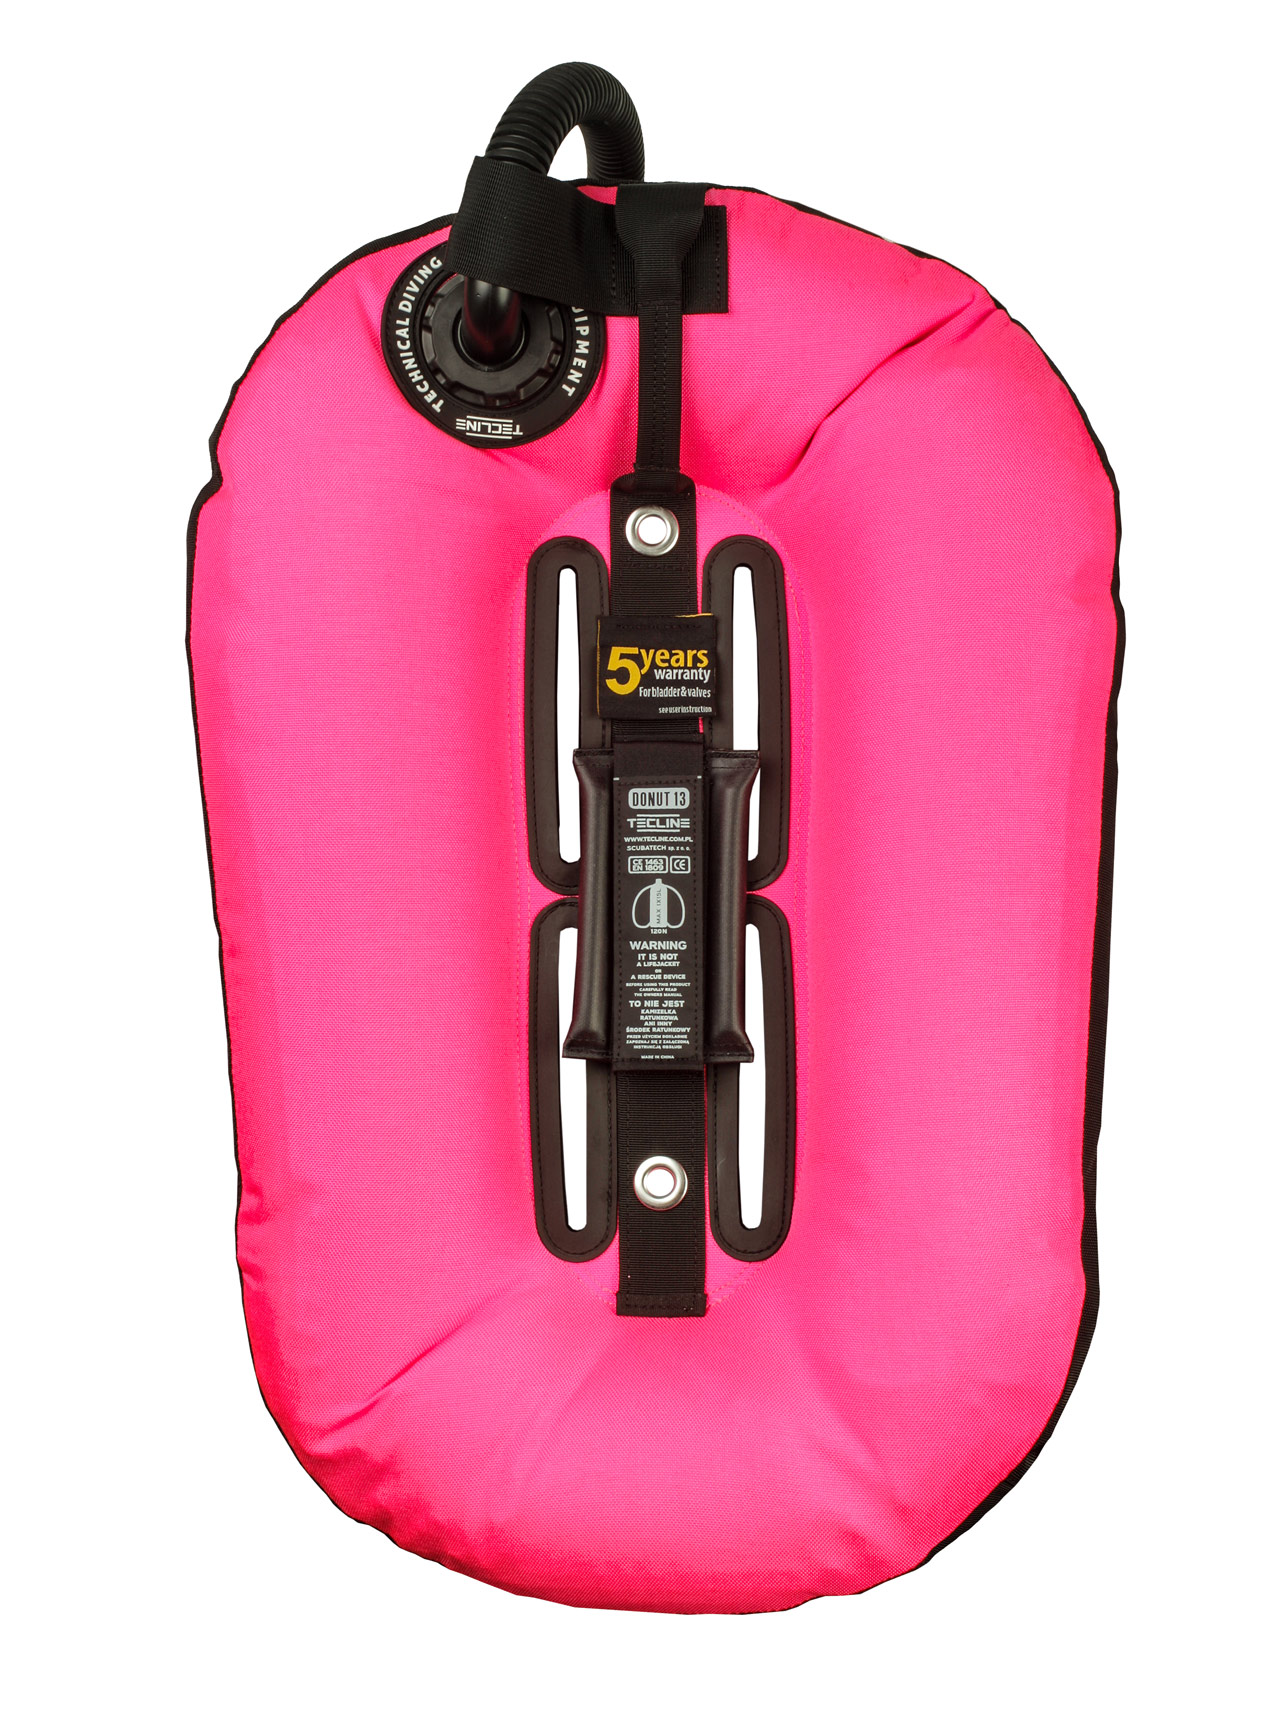 Donut 13 Pink (13kg/29lbs) for mono tank, built in mono adaptor